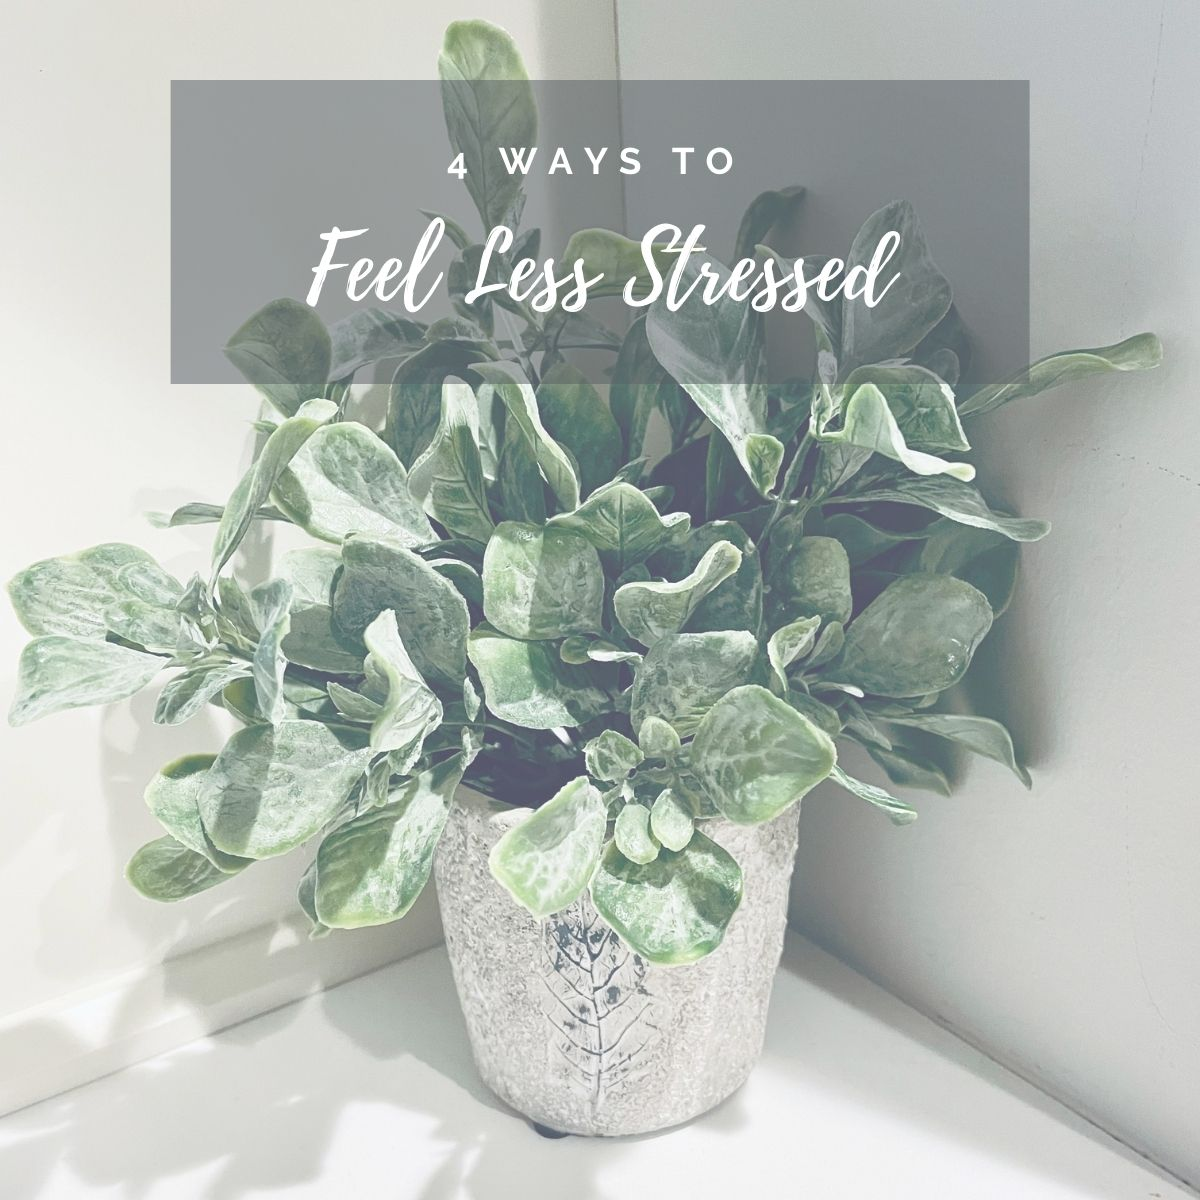 4 ways to feel less stressed image